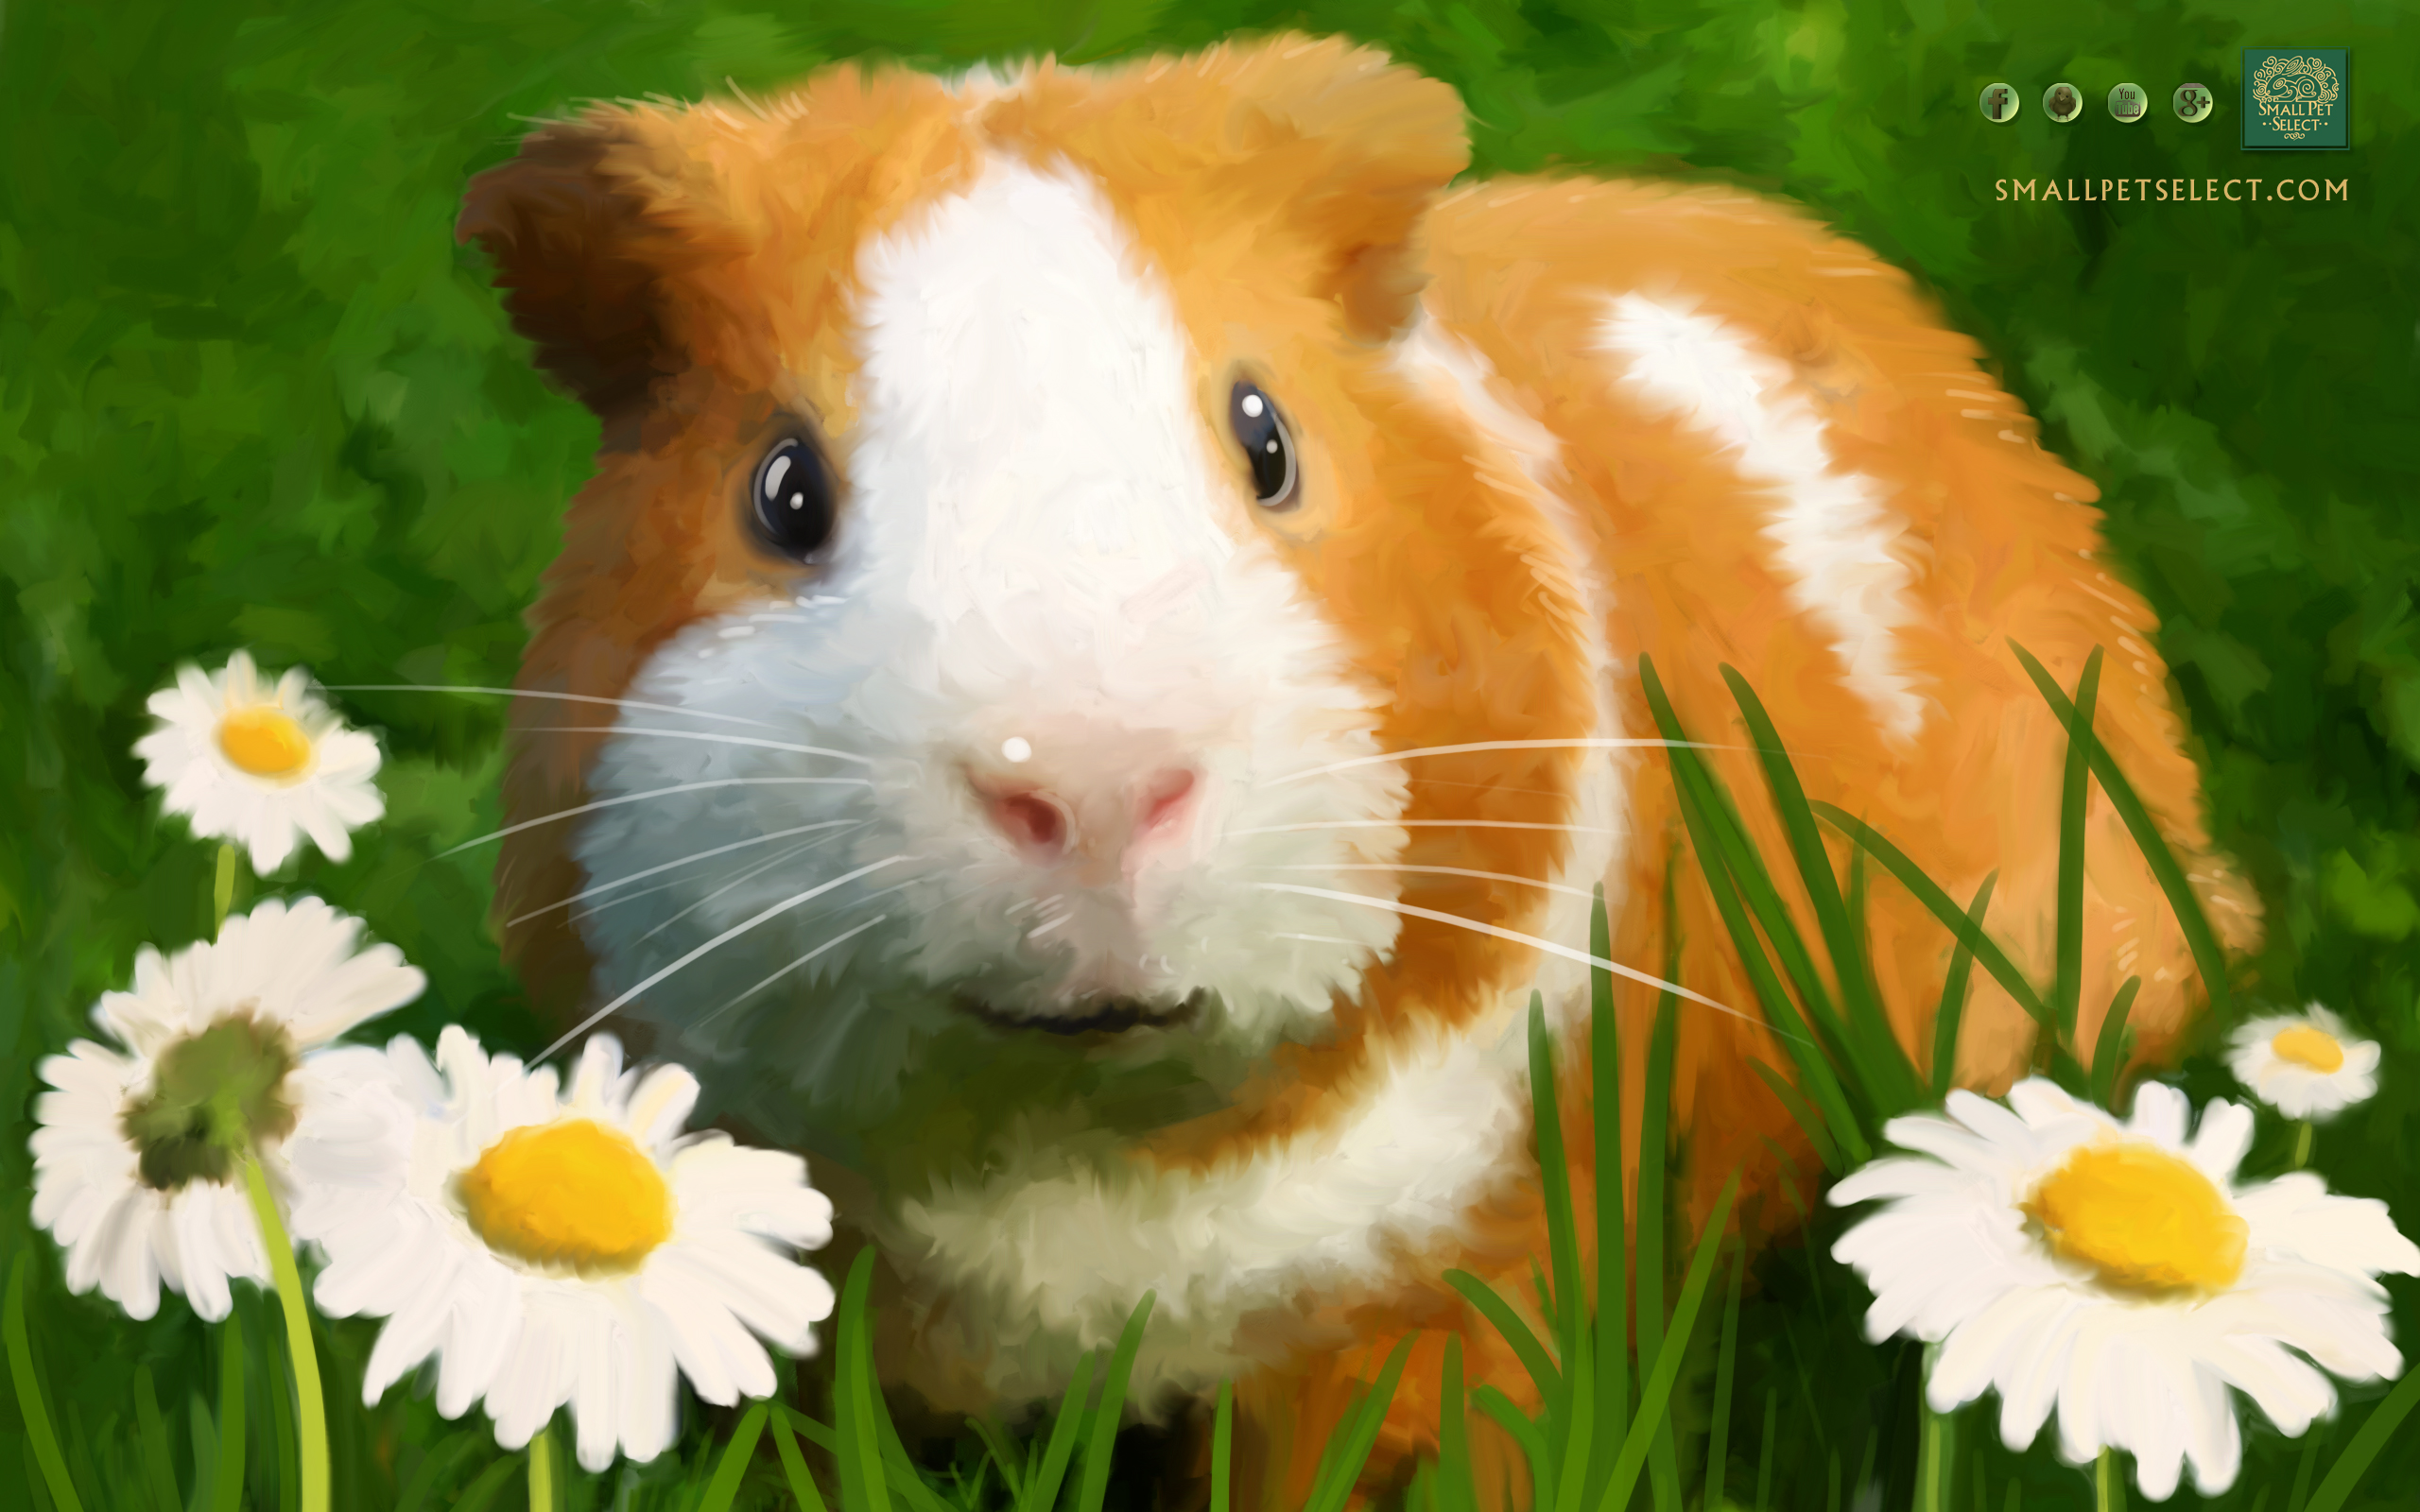 Guinea Pig Wallpaper   Screensaver for your PC MAC Ipad cell phone 2560x1600